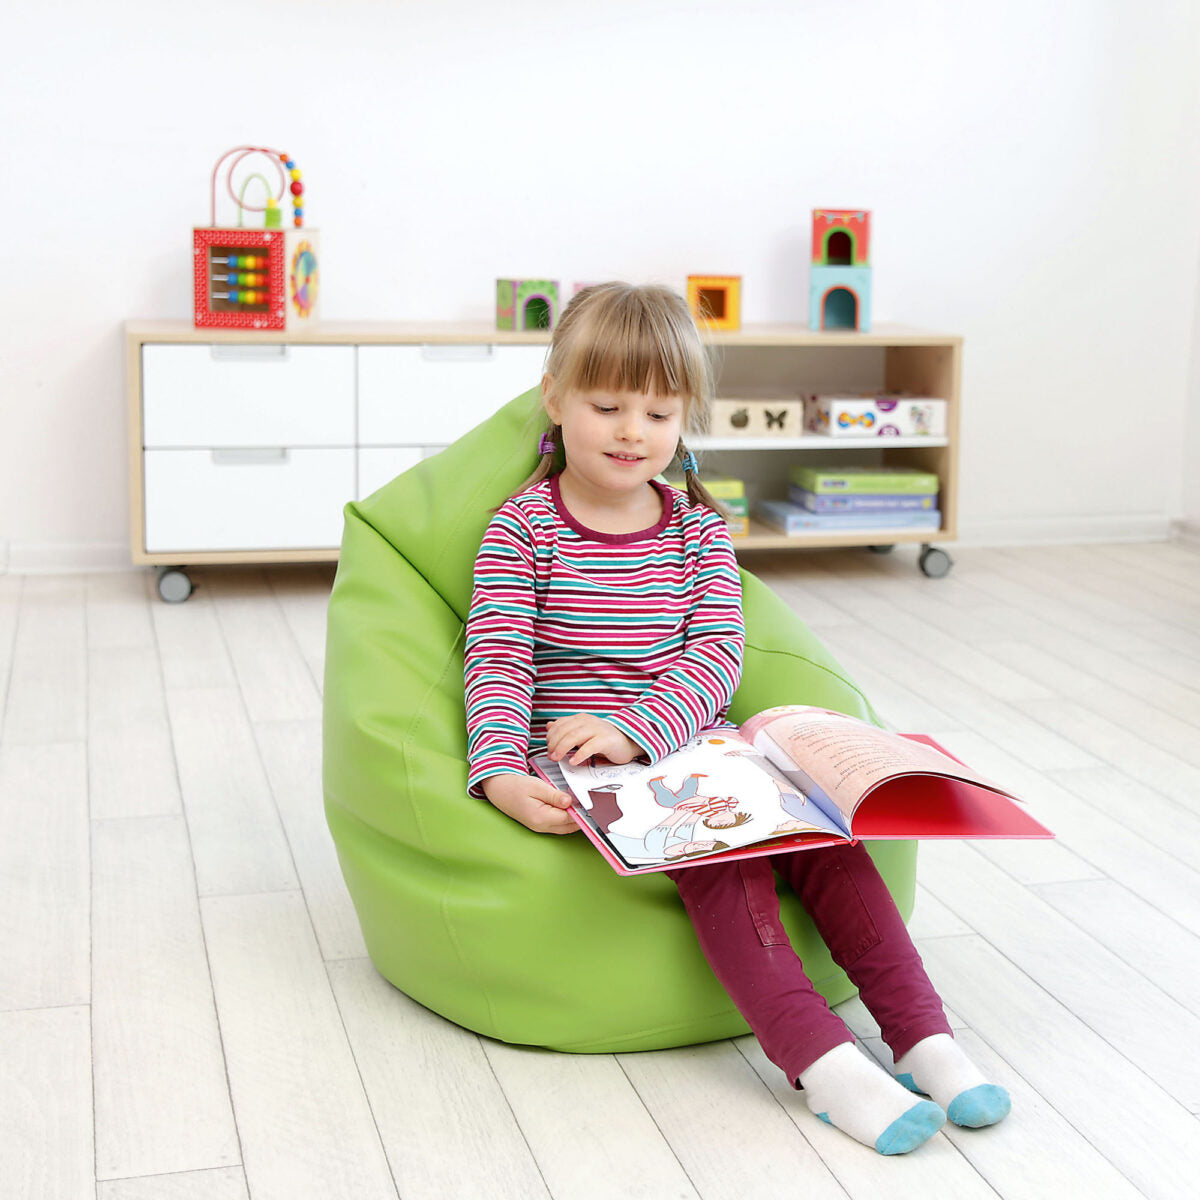 Children's Green Bean Bag, Furniture by Low Cost Gifts